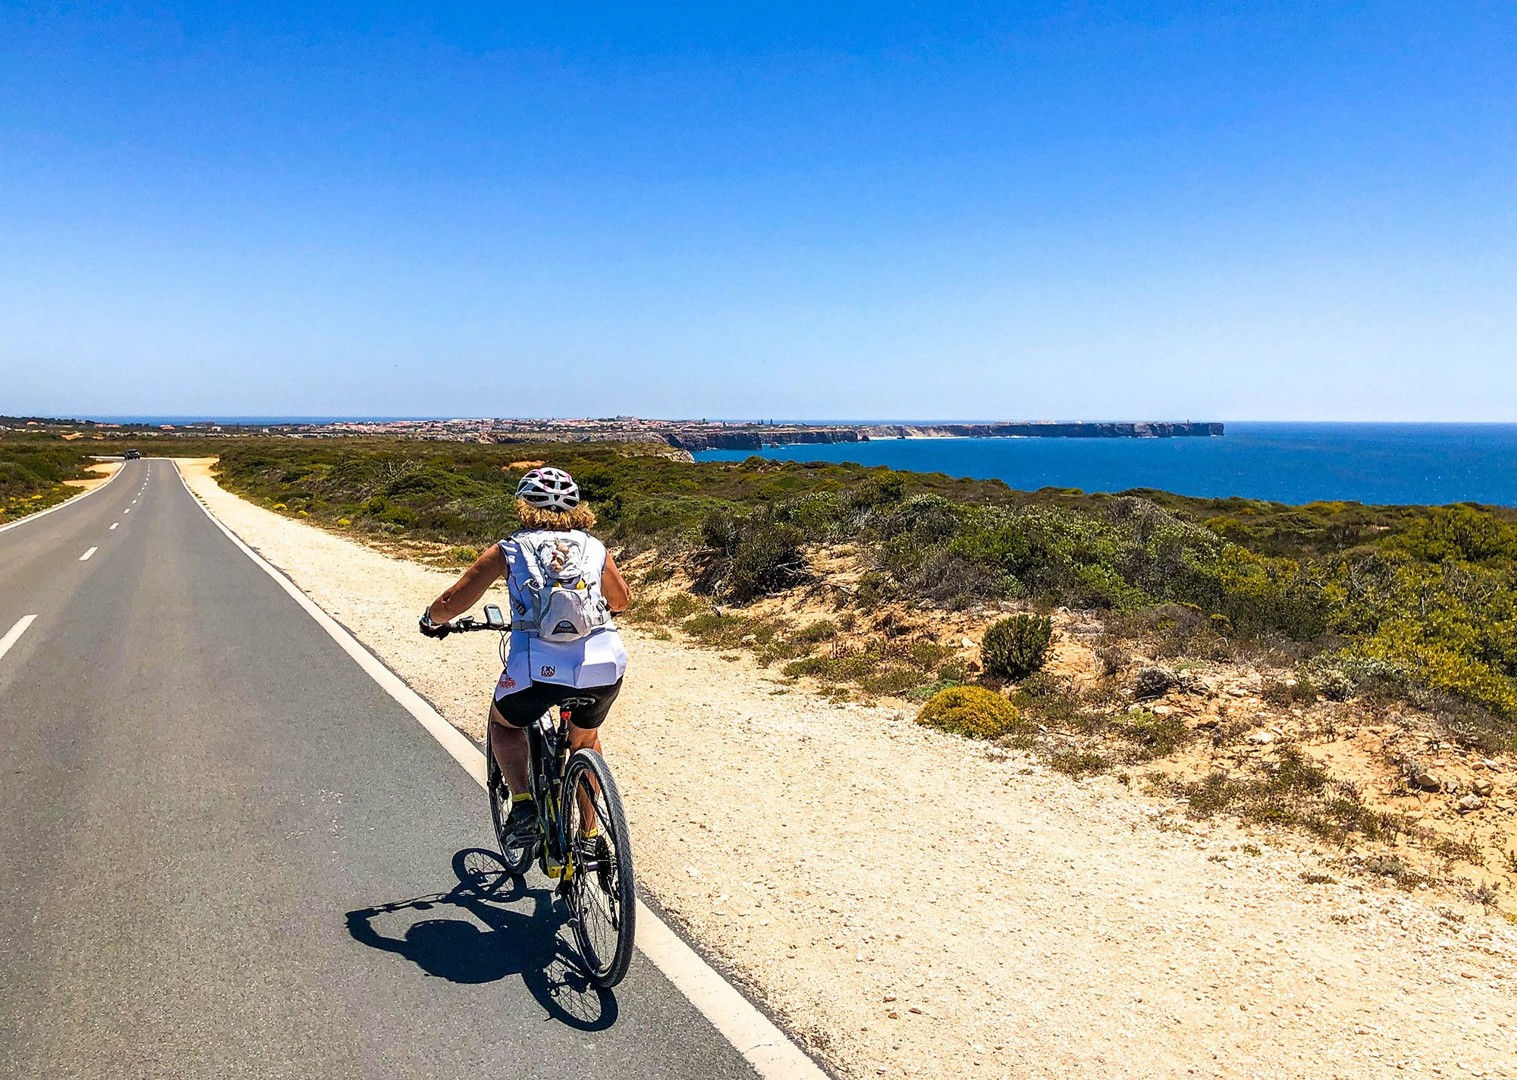 self-guided-leisure-cycling-holiday-portugal-algarve-coastal-explorer.jpg - Portugal - Alentejo and Algarve Coastal Explorer - Self-Guided Leisure Cycling Holiday - Leisure Cycling